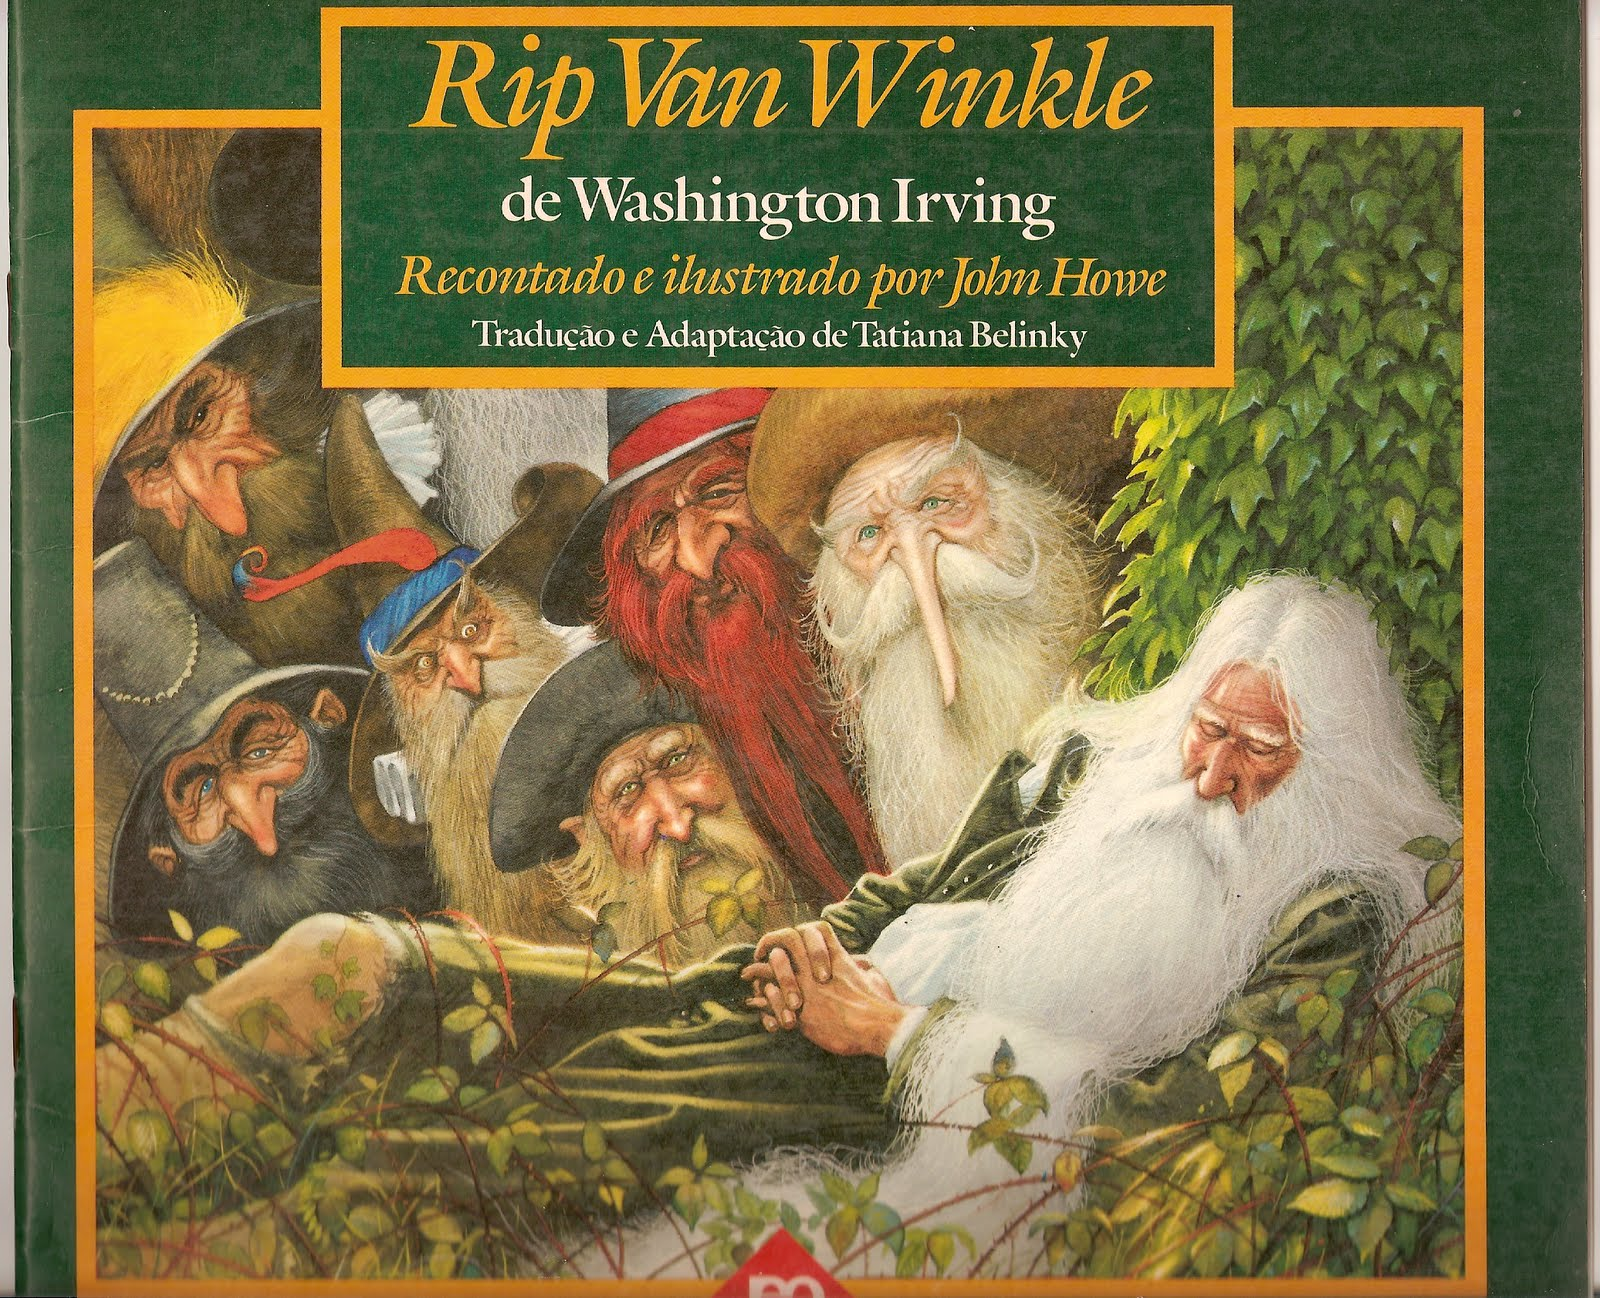 "essays on rip van winkle Below you will find five outstanding thesis statements for ""rip van winkle"" by washington irving that can be used as essay starters or paper topics all five incorporate at least one of the themes in ""rip van winkle"" and are broad enough so that it will be easy to find textual support, yet narrow enough to provide a focused."